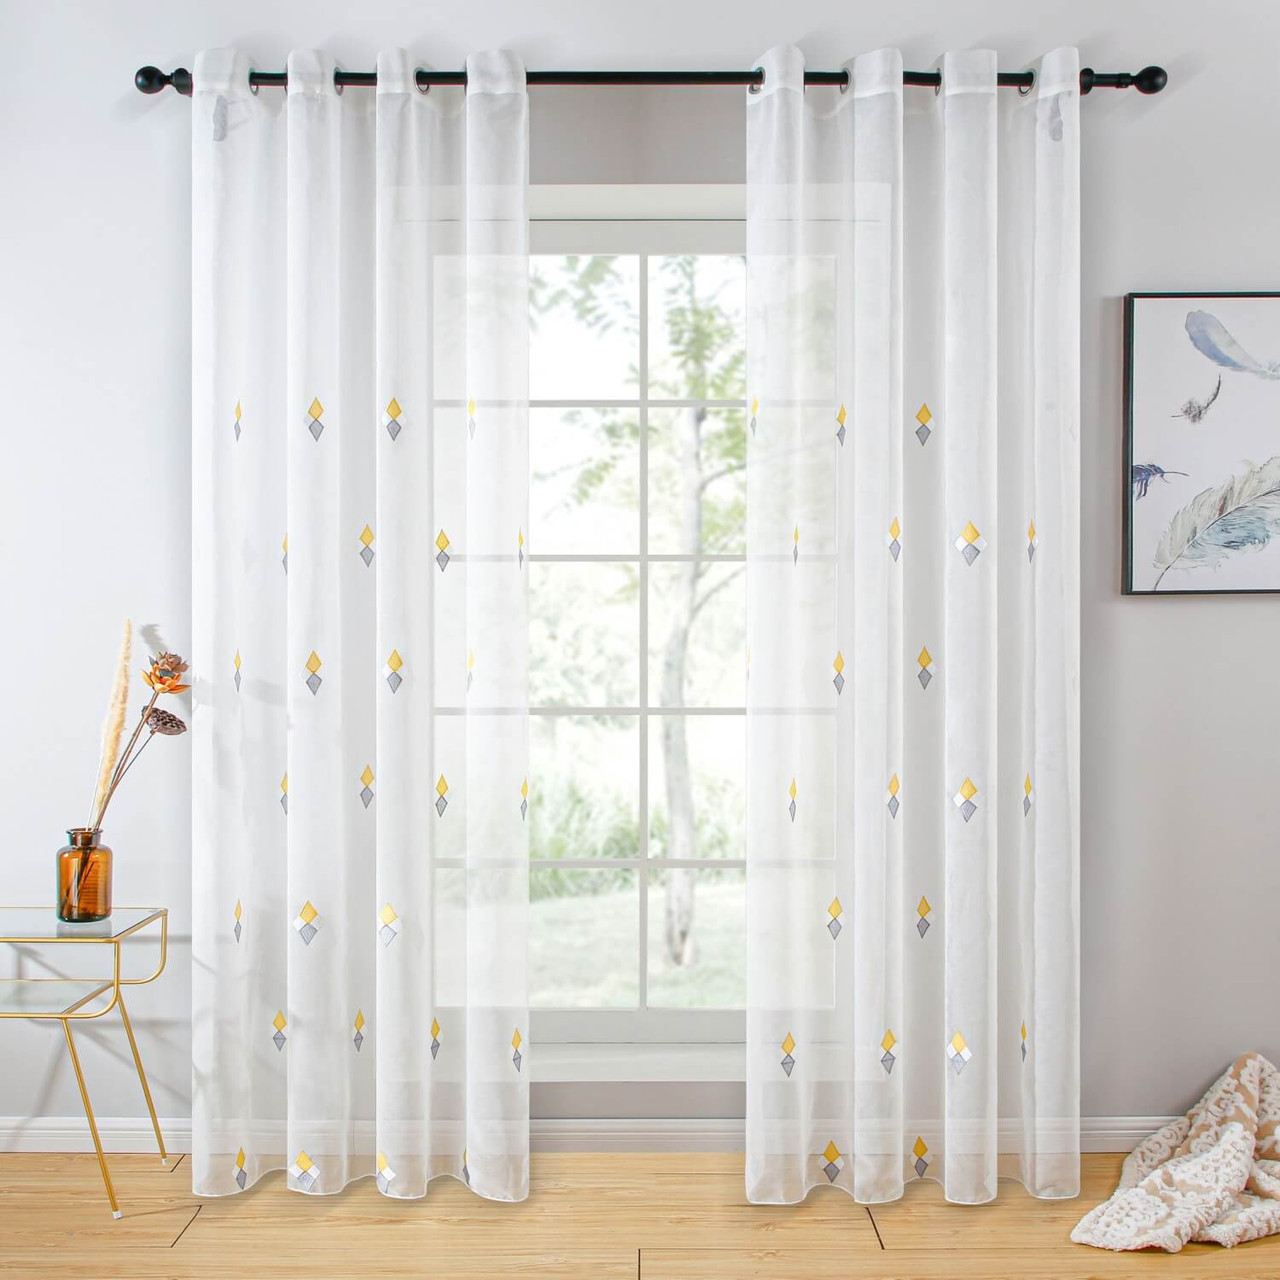 Sheer Curtain Panel Grommet-Top Window Treatments DMC726 Dolce Mela 8171460151846